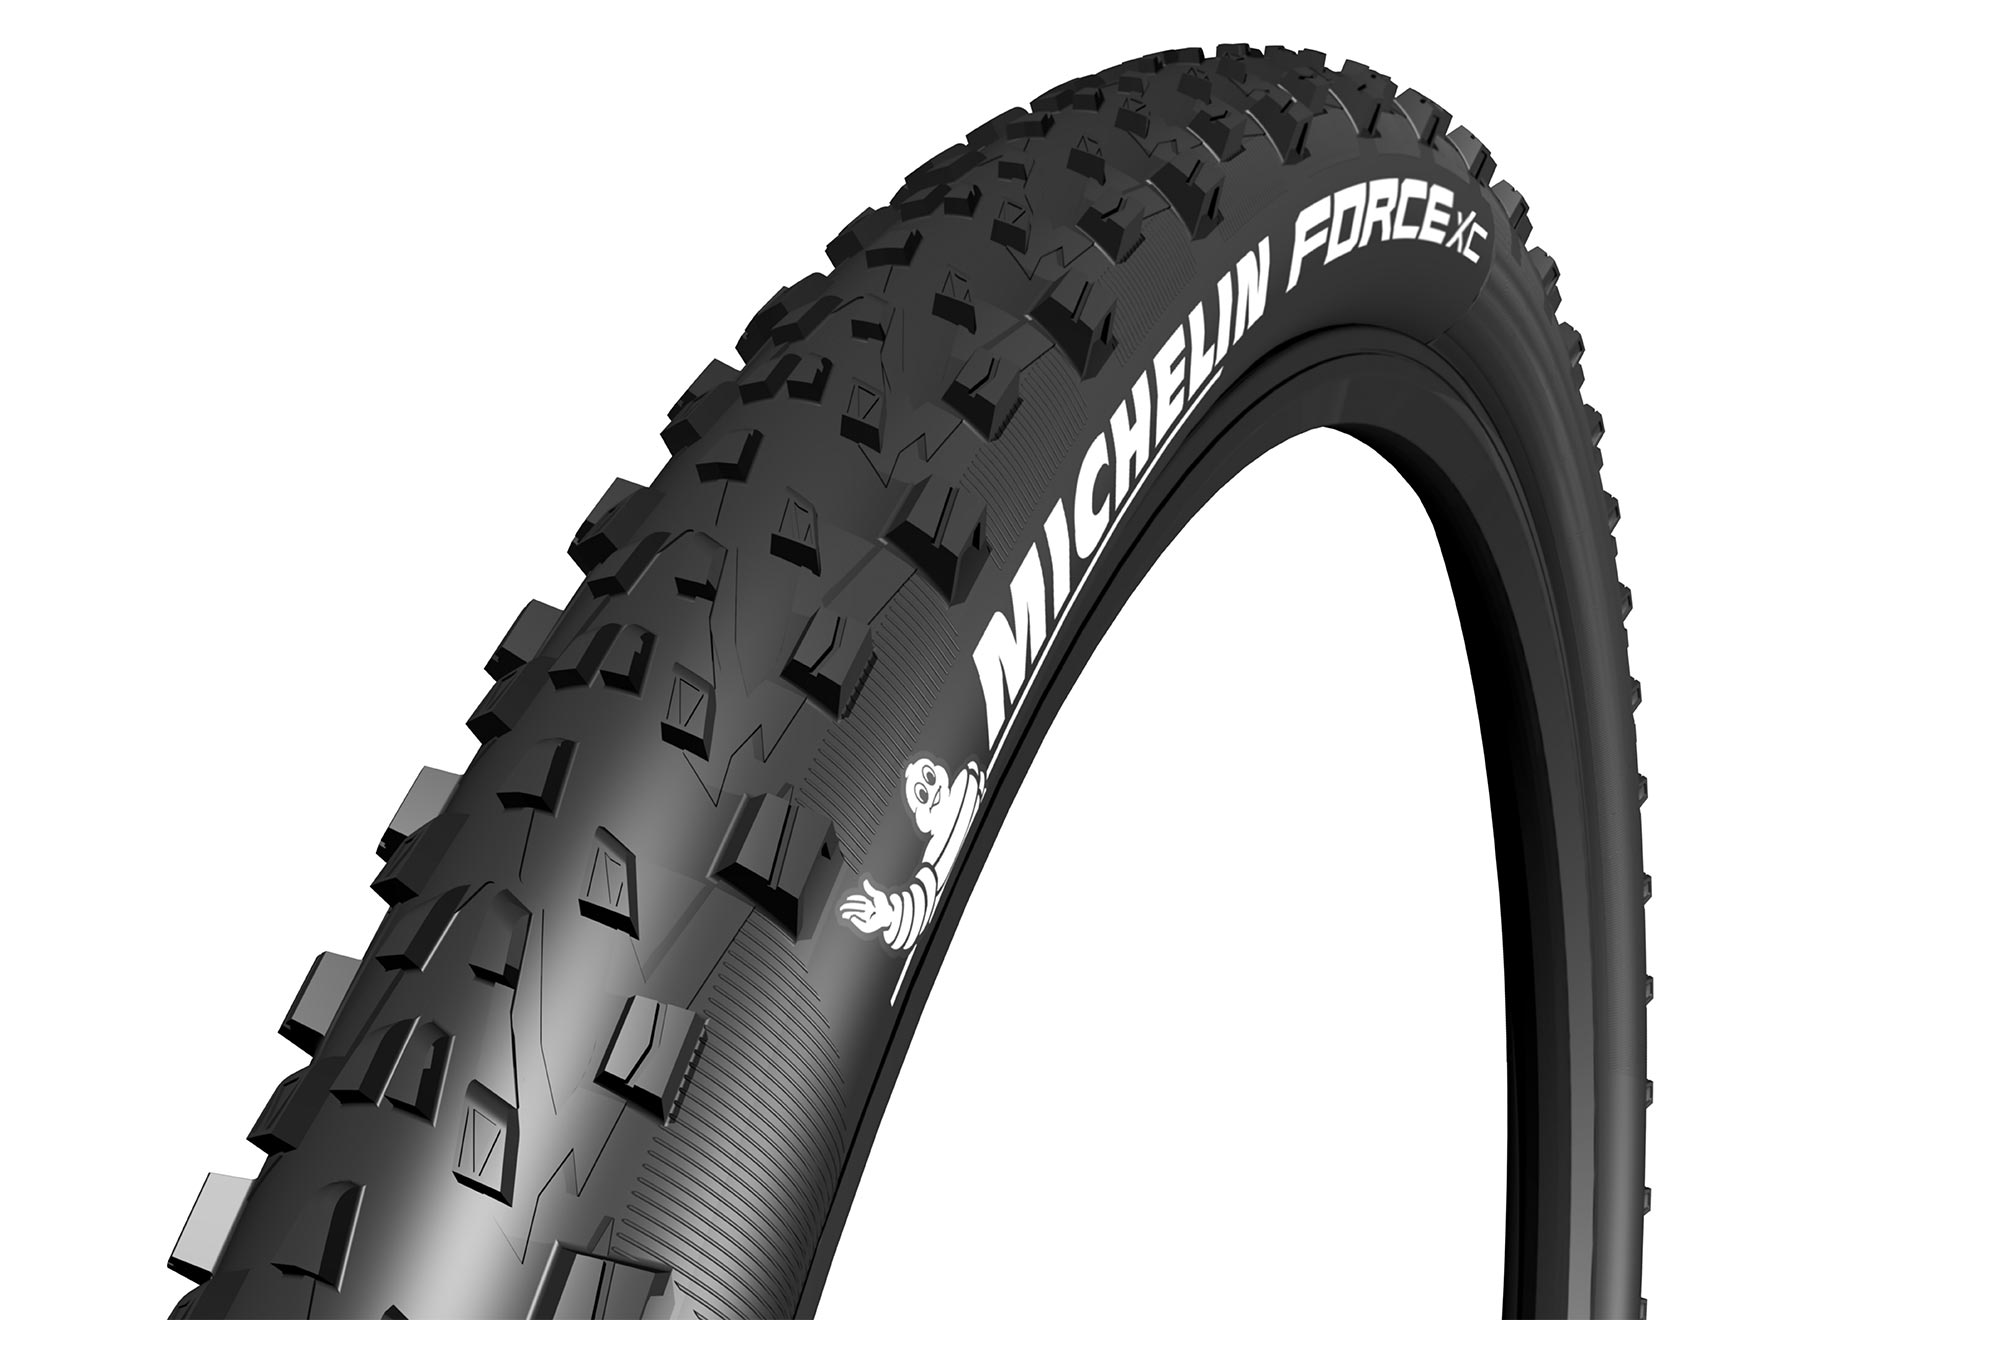 pneu michelin force xc competition line 26 tubeless ready souple. Black Bedroom Furniture Sets. Home Design Ideas